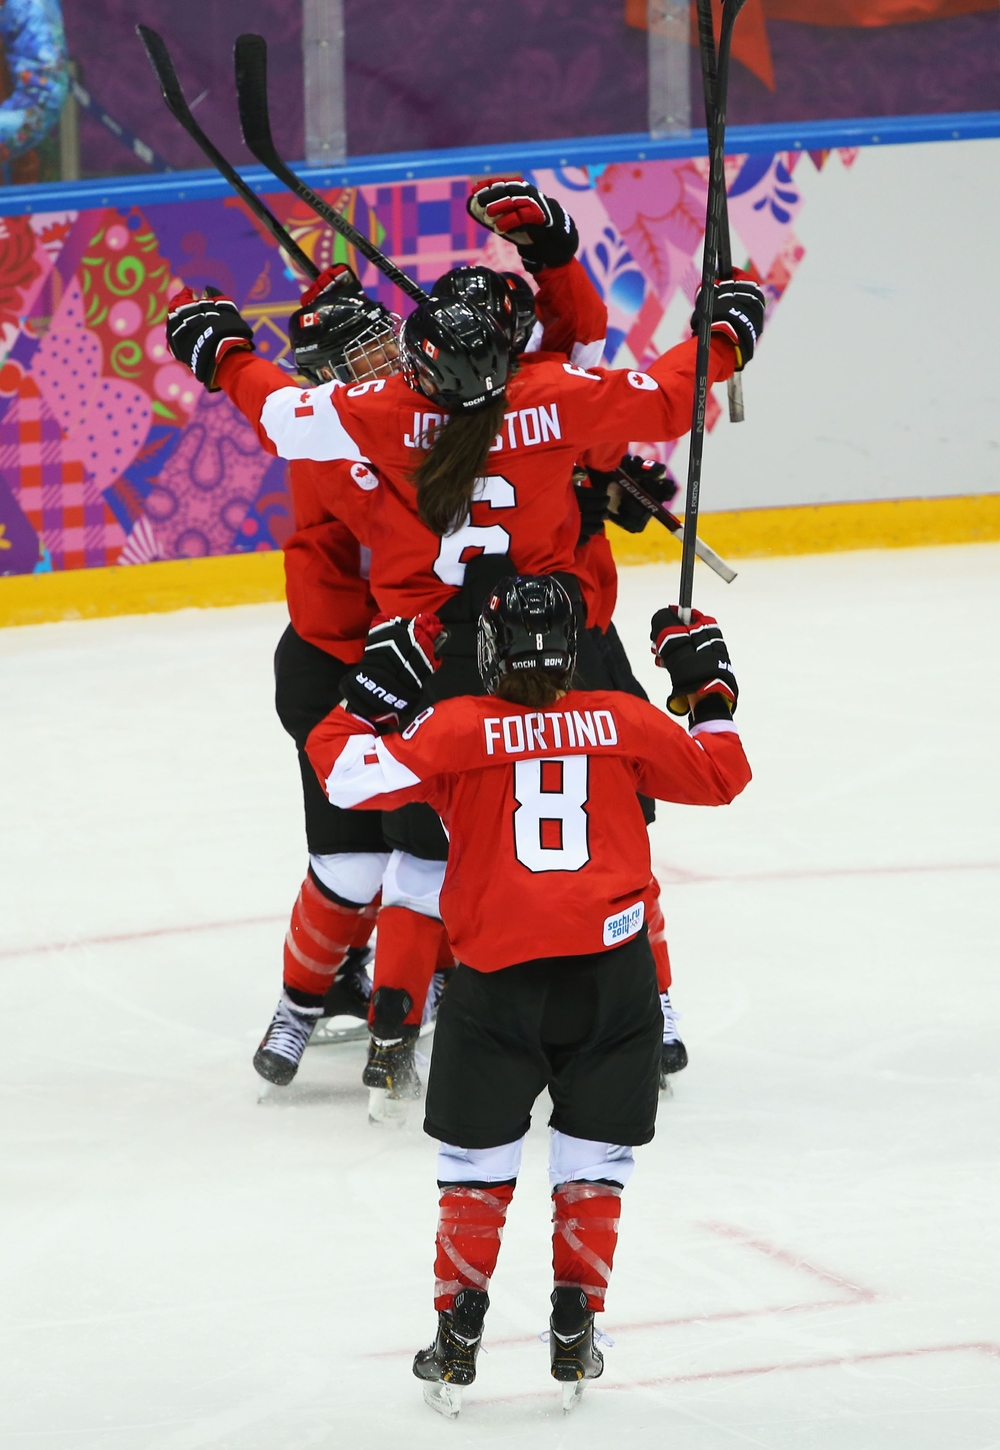 Canada WIns Gold in Women's Hockey